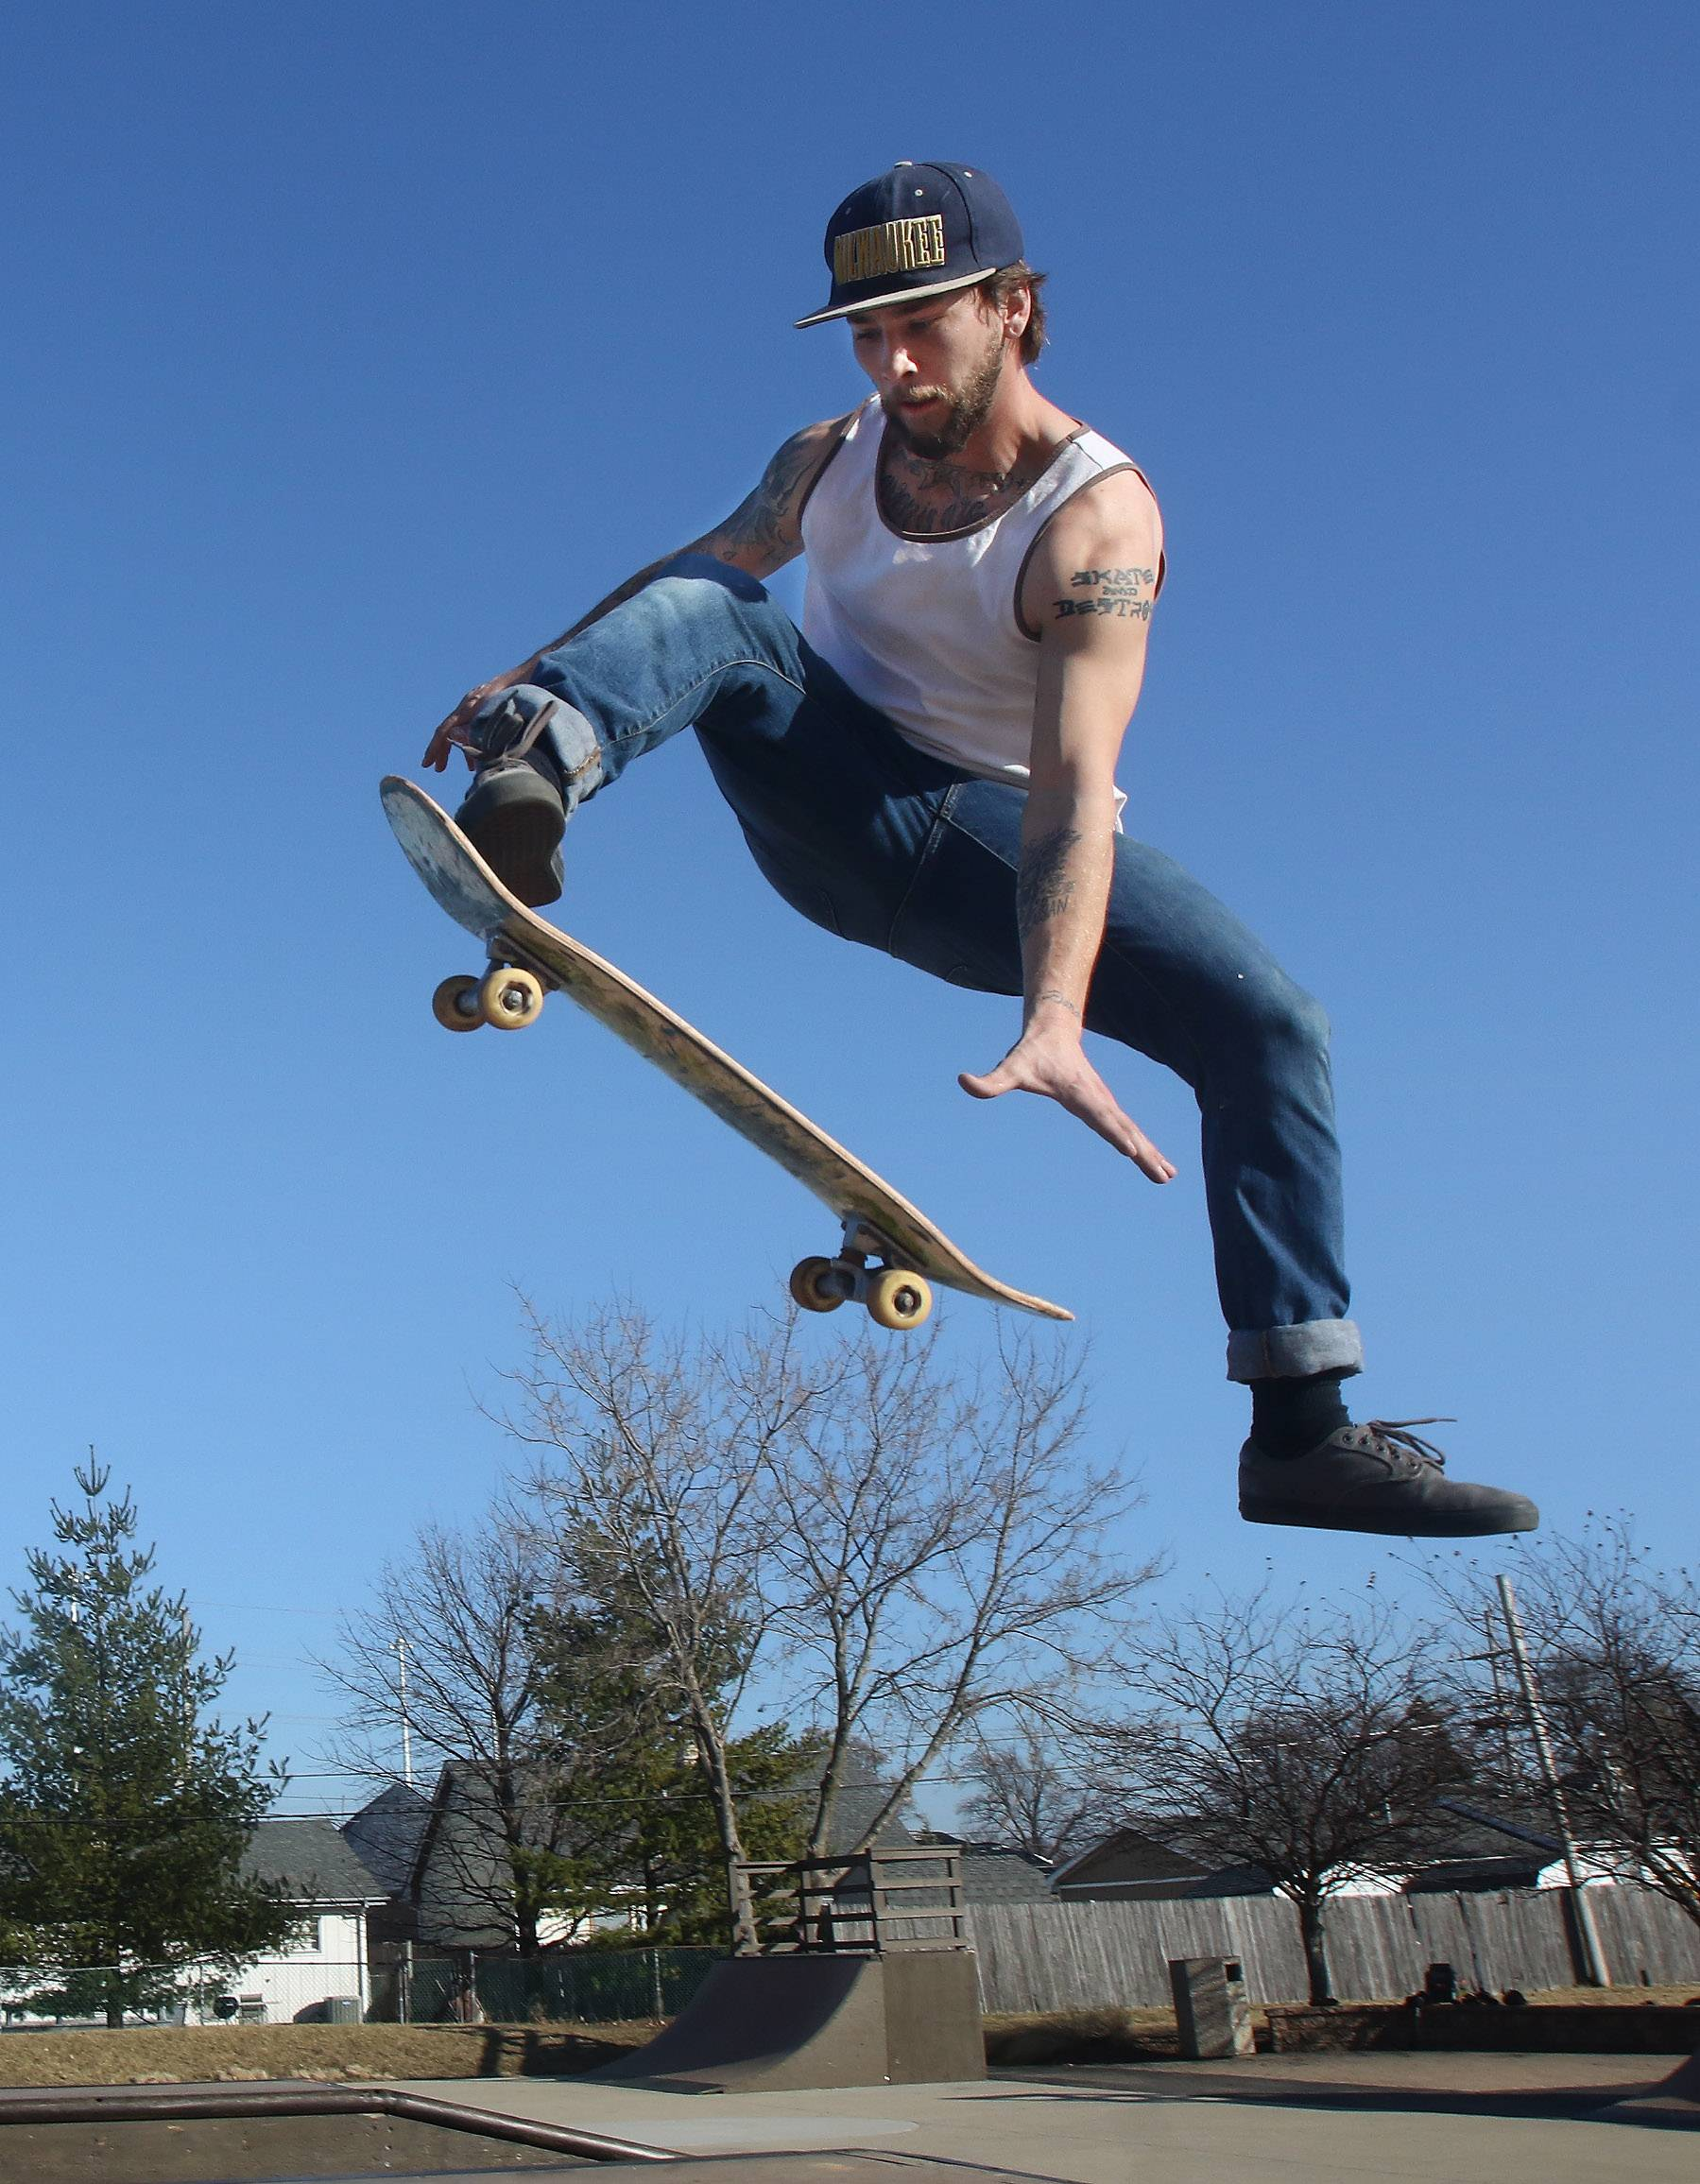 Codey Walsh of Lake Villa flies high with his skateboard Wednesday afternoon at Daniel Barry Memorial Skate Park in Grayslake. The unusually warm weather in February continued for another day, giving people a taste of Spring.